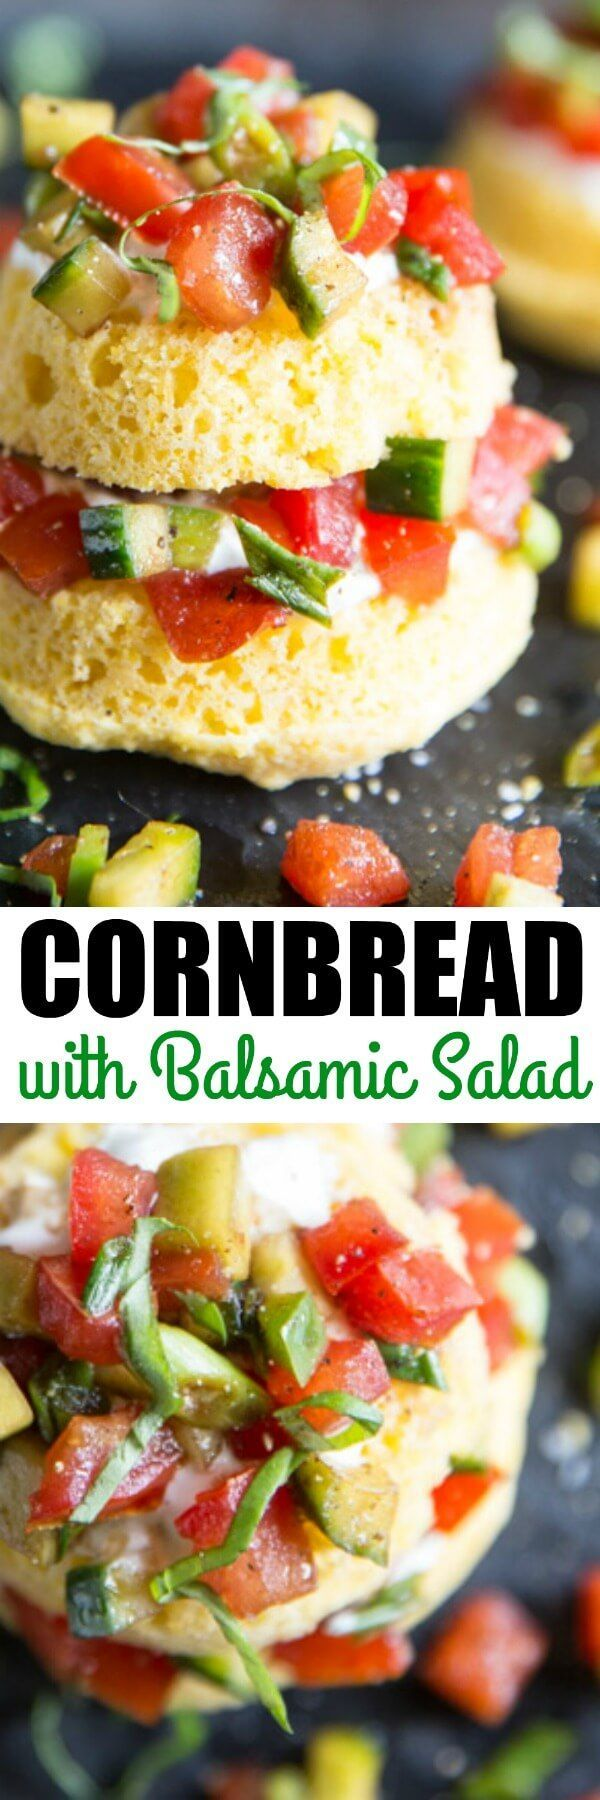 Savory cornbread cakes layered with sour cream and…